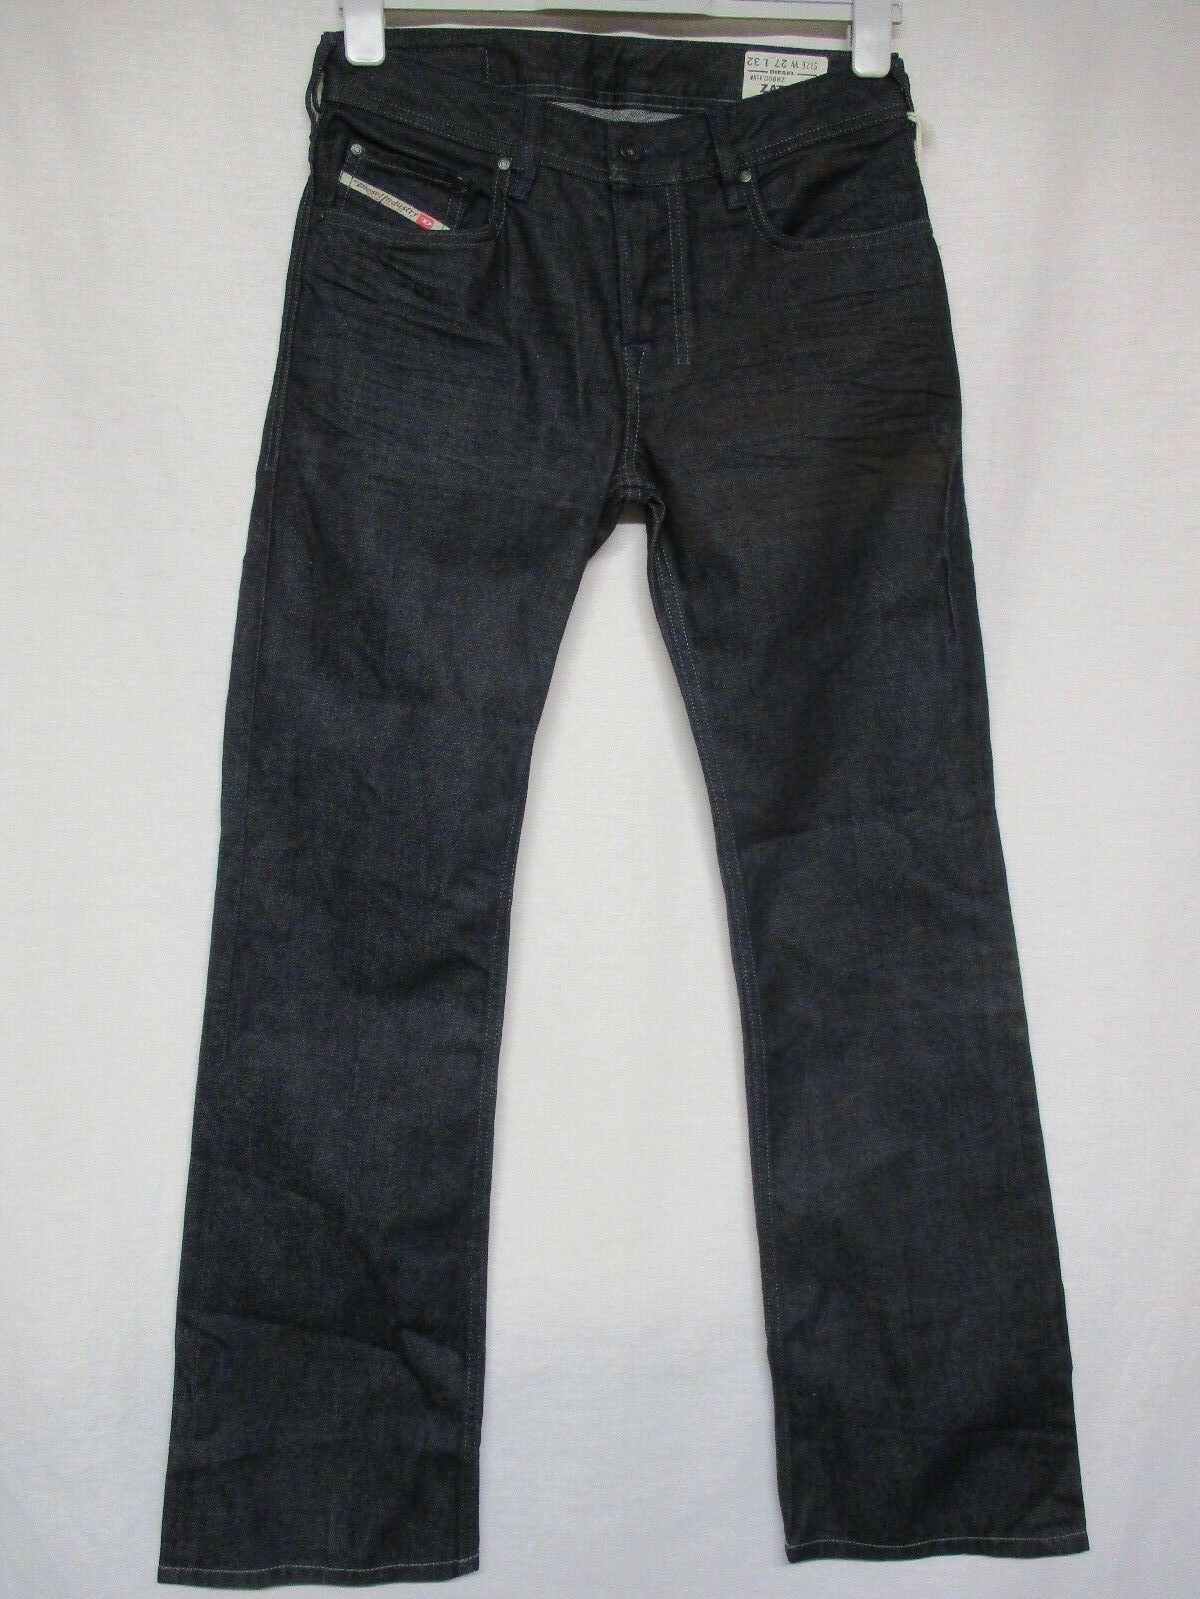 NWT DIESEL Zatiny Regular Boot cut bluee faded denim jeans pants cotton 27x32